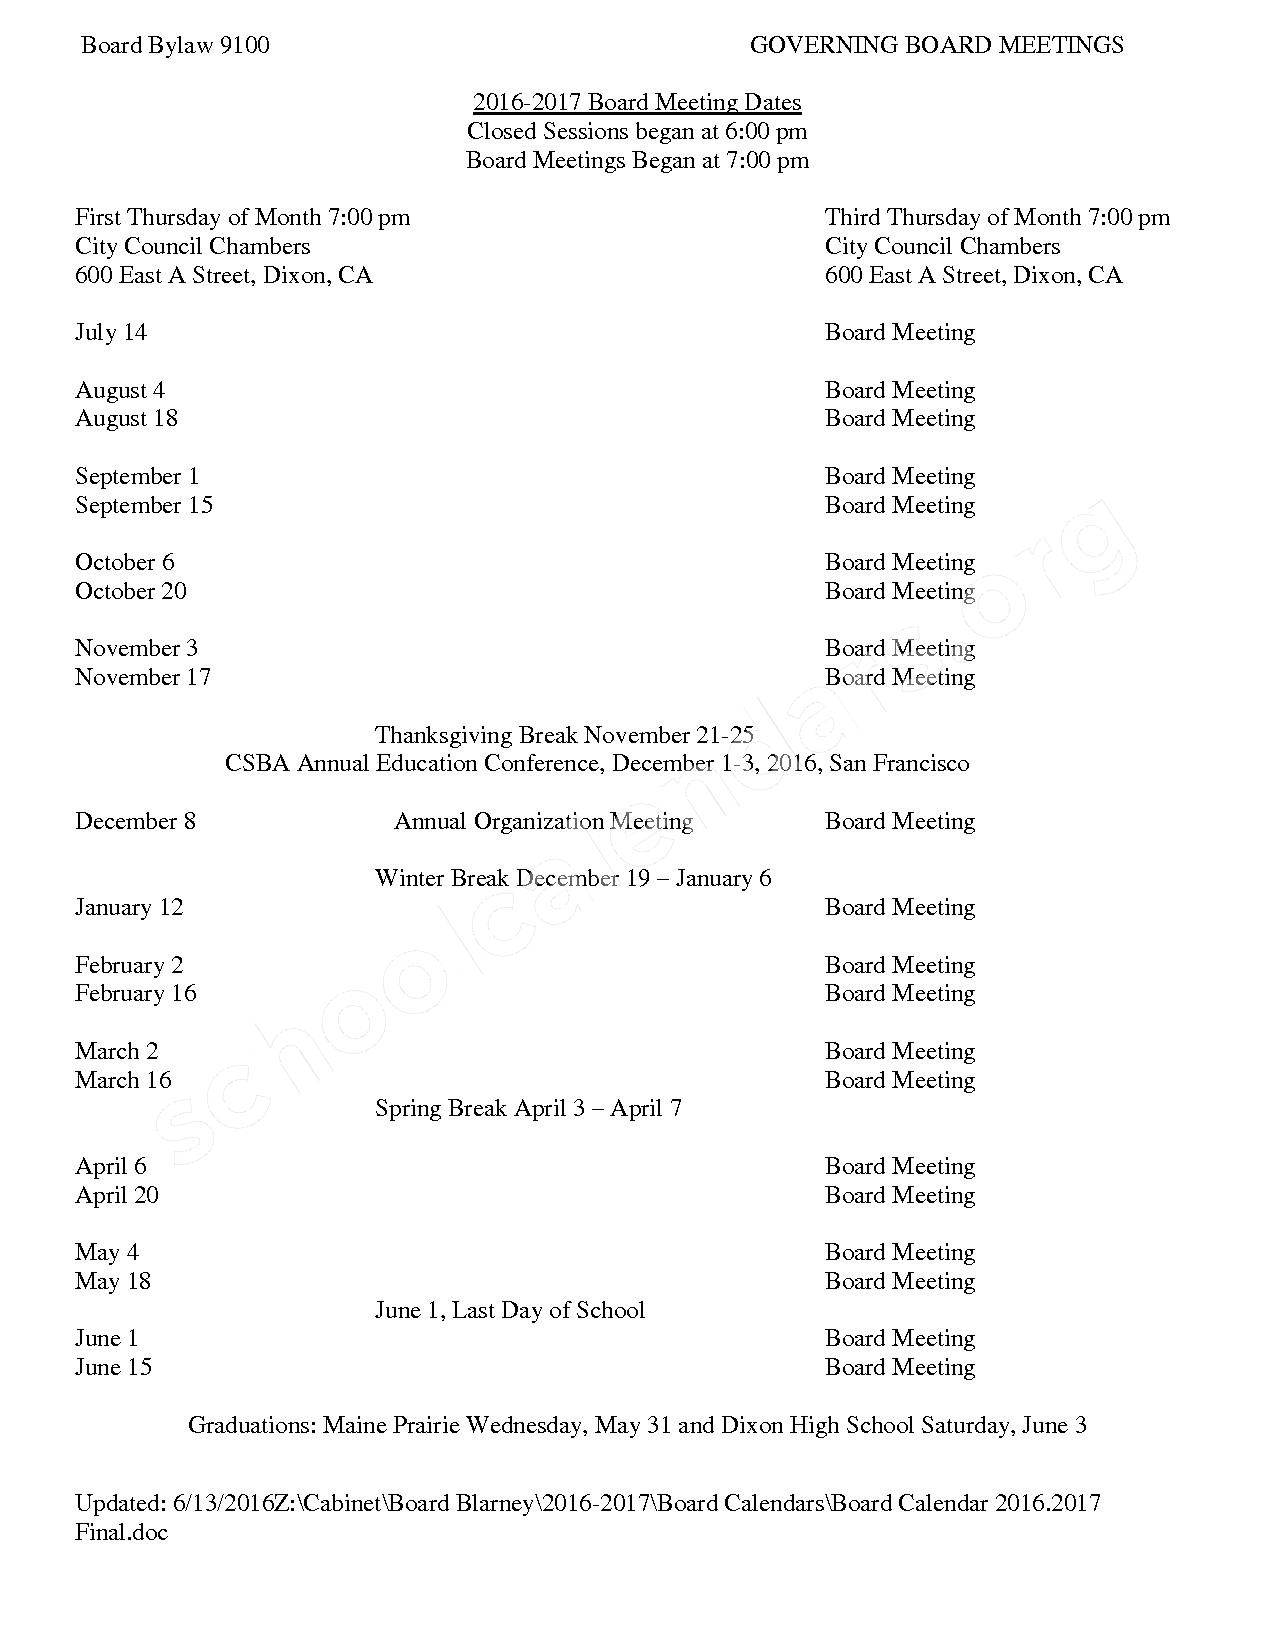 2016 - 2017 Board Meeting Calendar – Dixon Unified School District – page 1